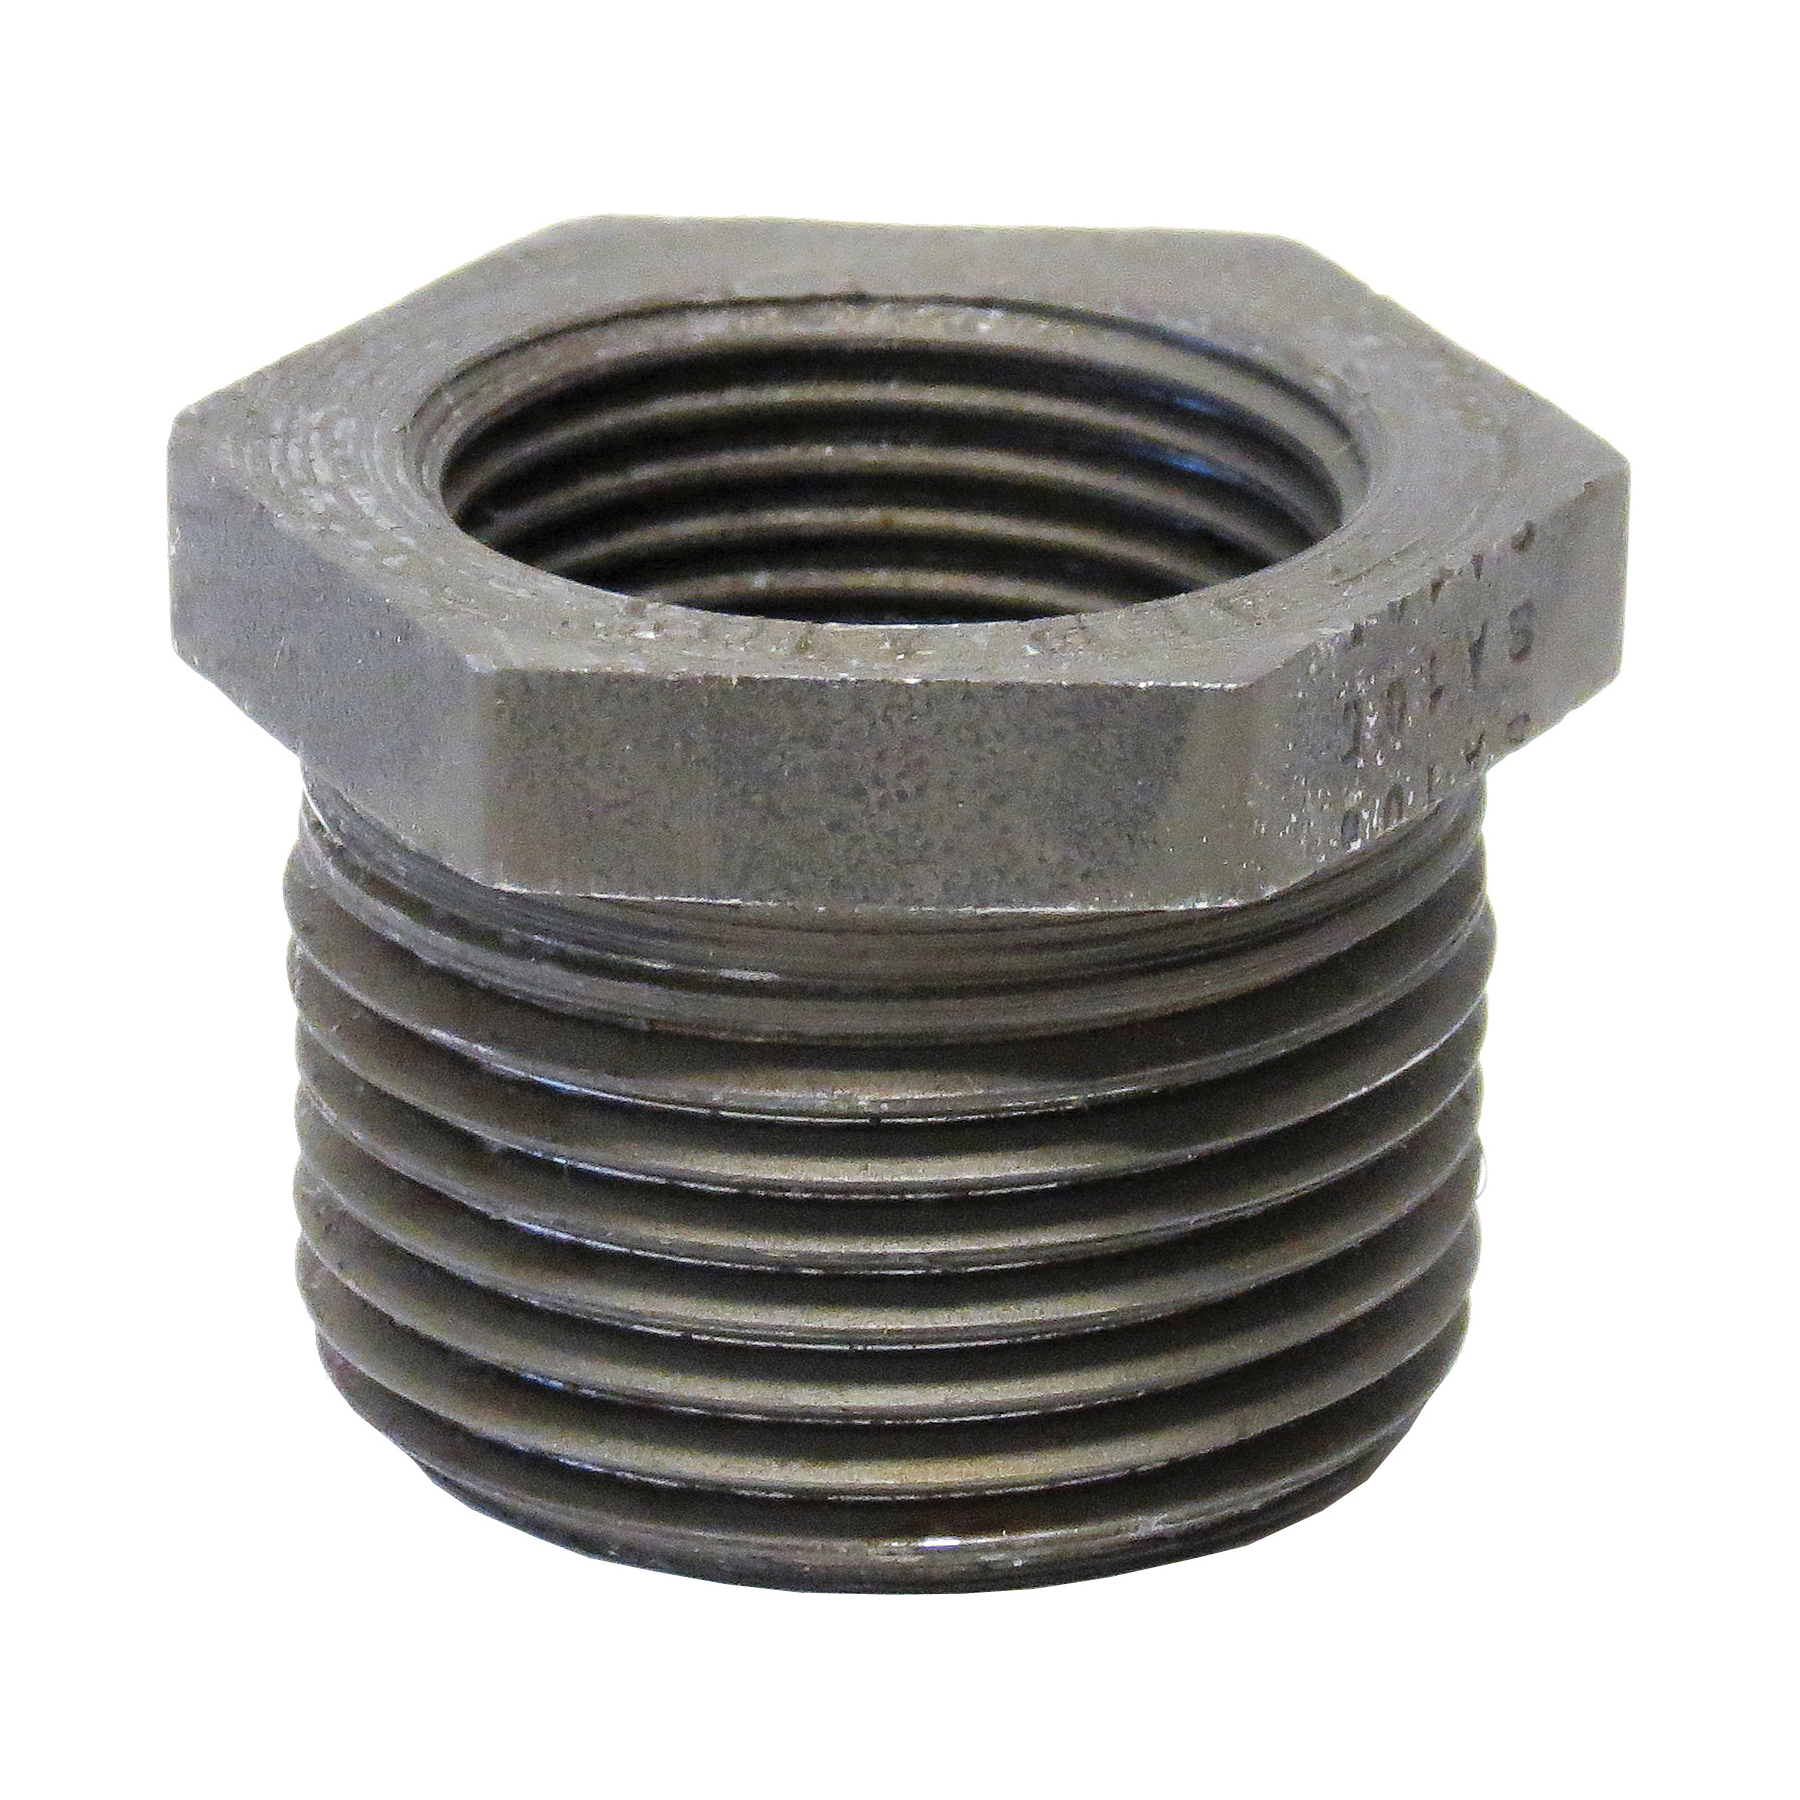 Anvil® 0361331309 FIG 2139 Hex Head Pipe Bushing, 1 x 1/2 in Nominal, FNPT x MNPT End Style, 3000 lb, Steel, Black Oxide, Domestic